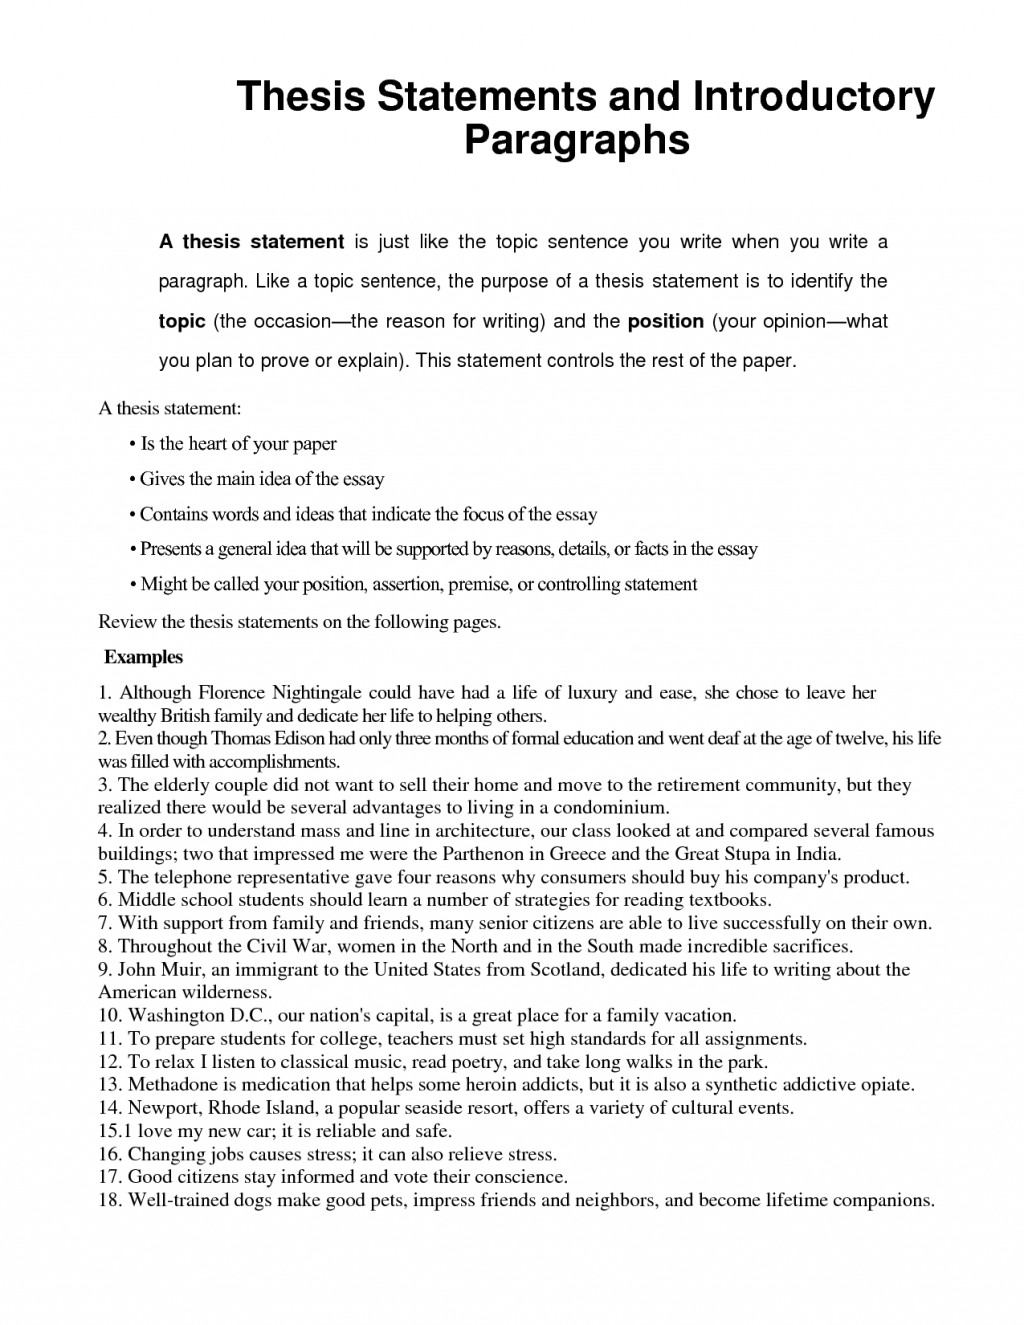 009 Water Pollution Essay Example Thesis Statement For Saving The Environment Xxp4v Incredible In Hindi Pdf Download Odia Kannada Large